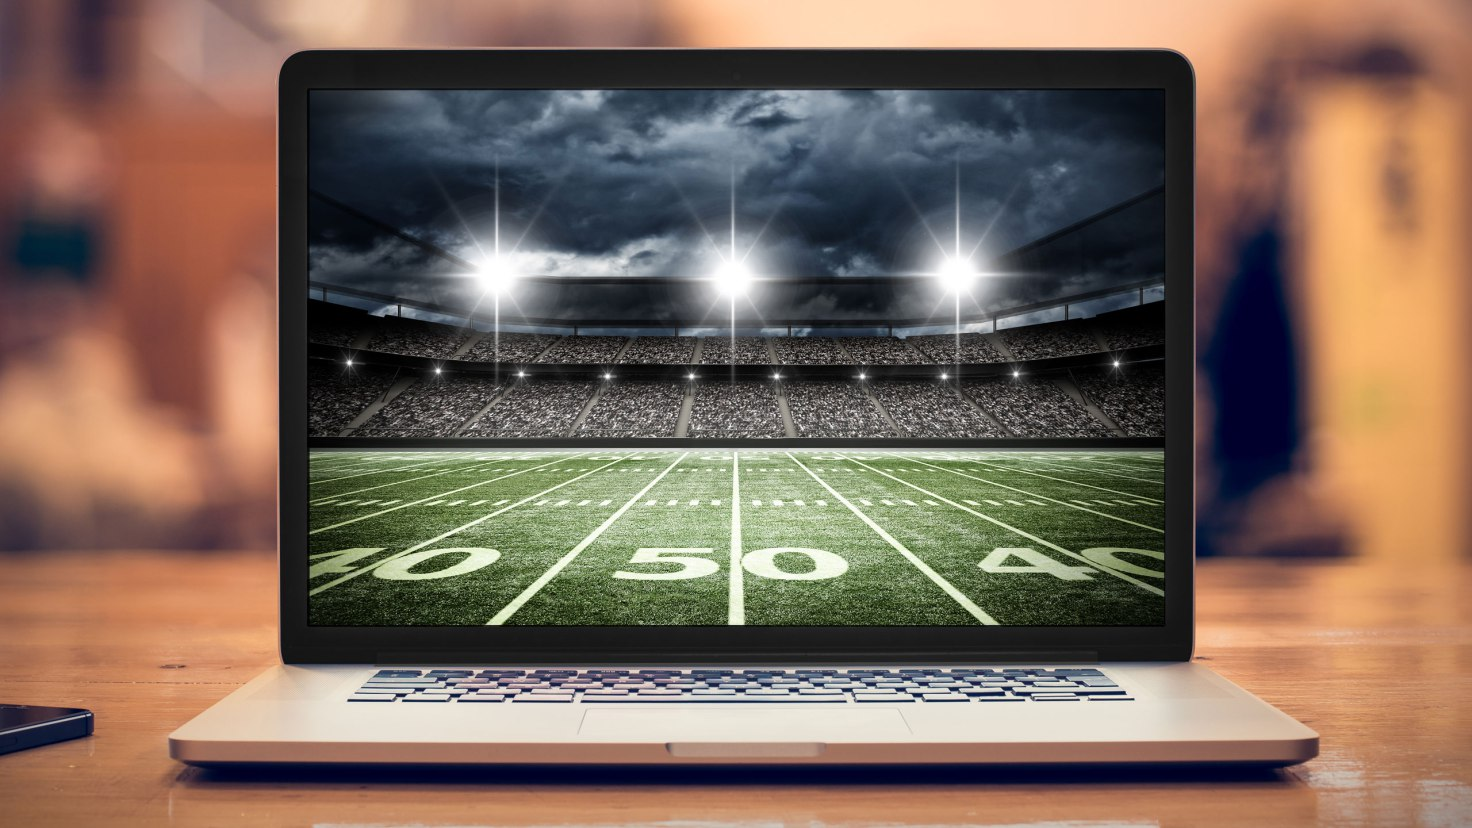 The NFL partners with Facebook to distribute game highlights and recaps on the social network